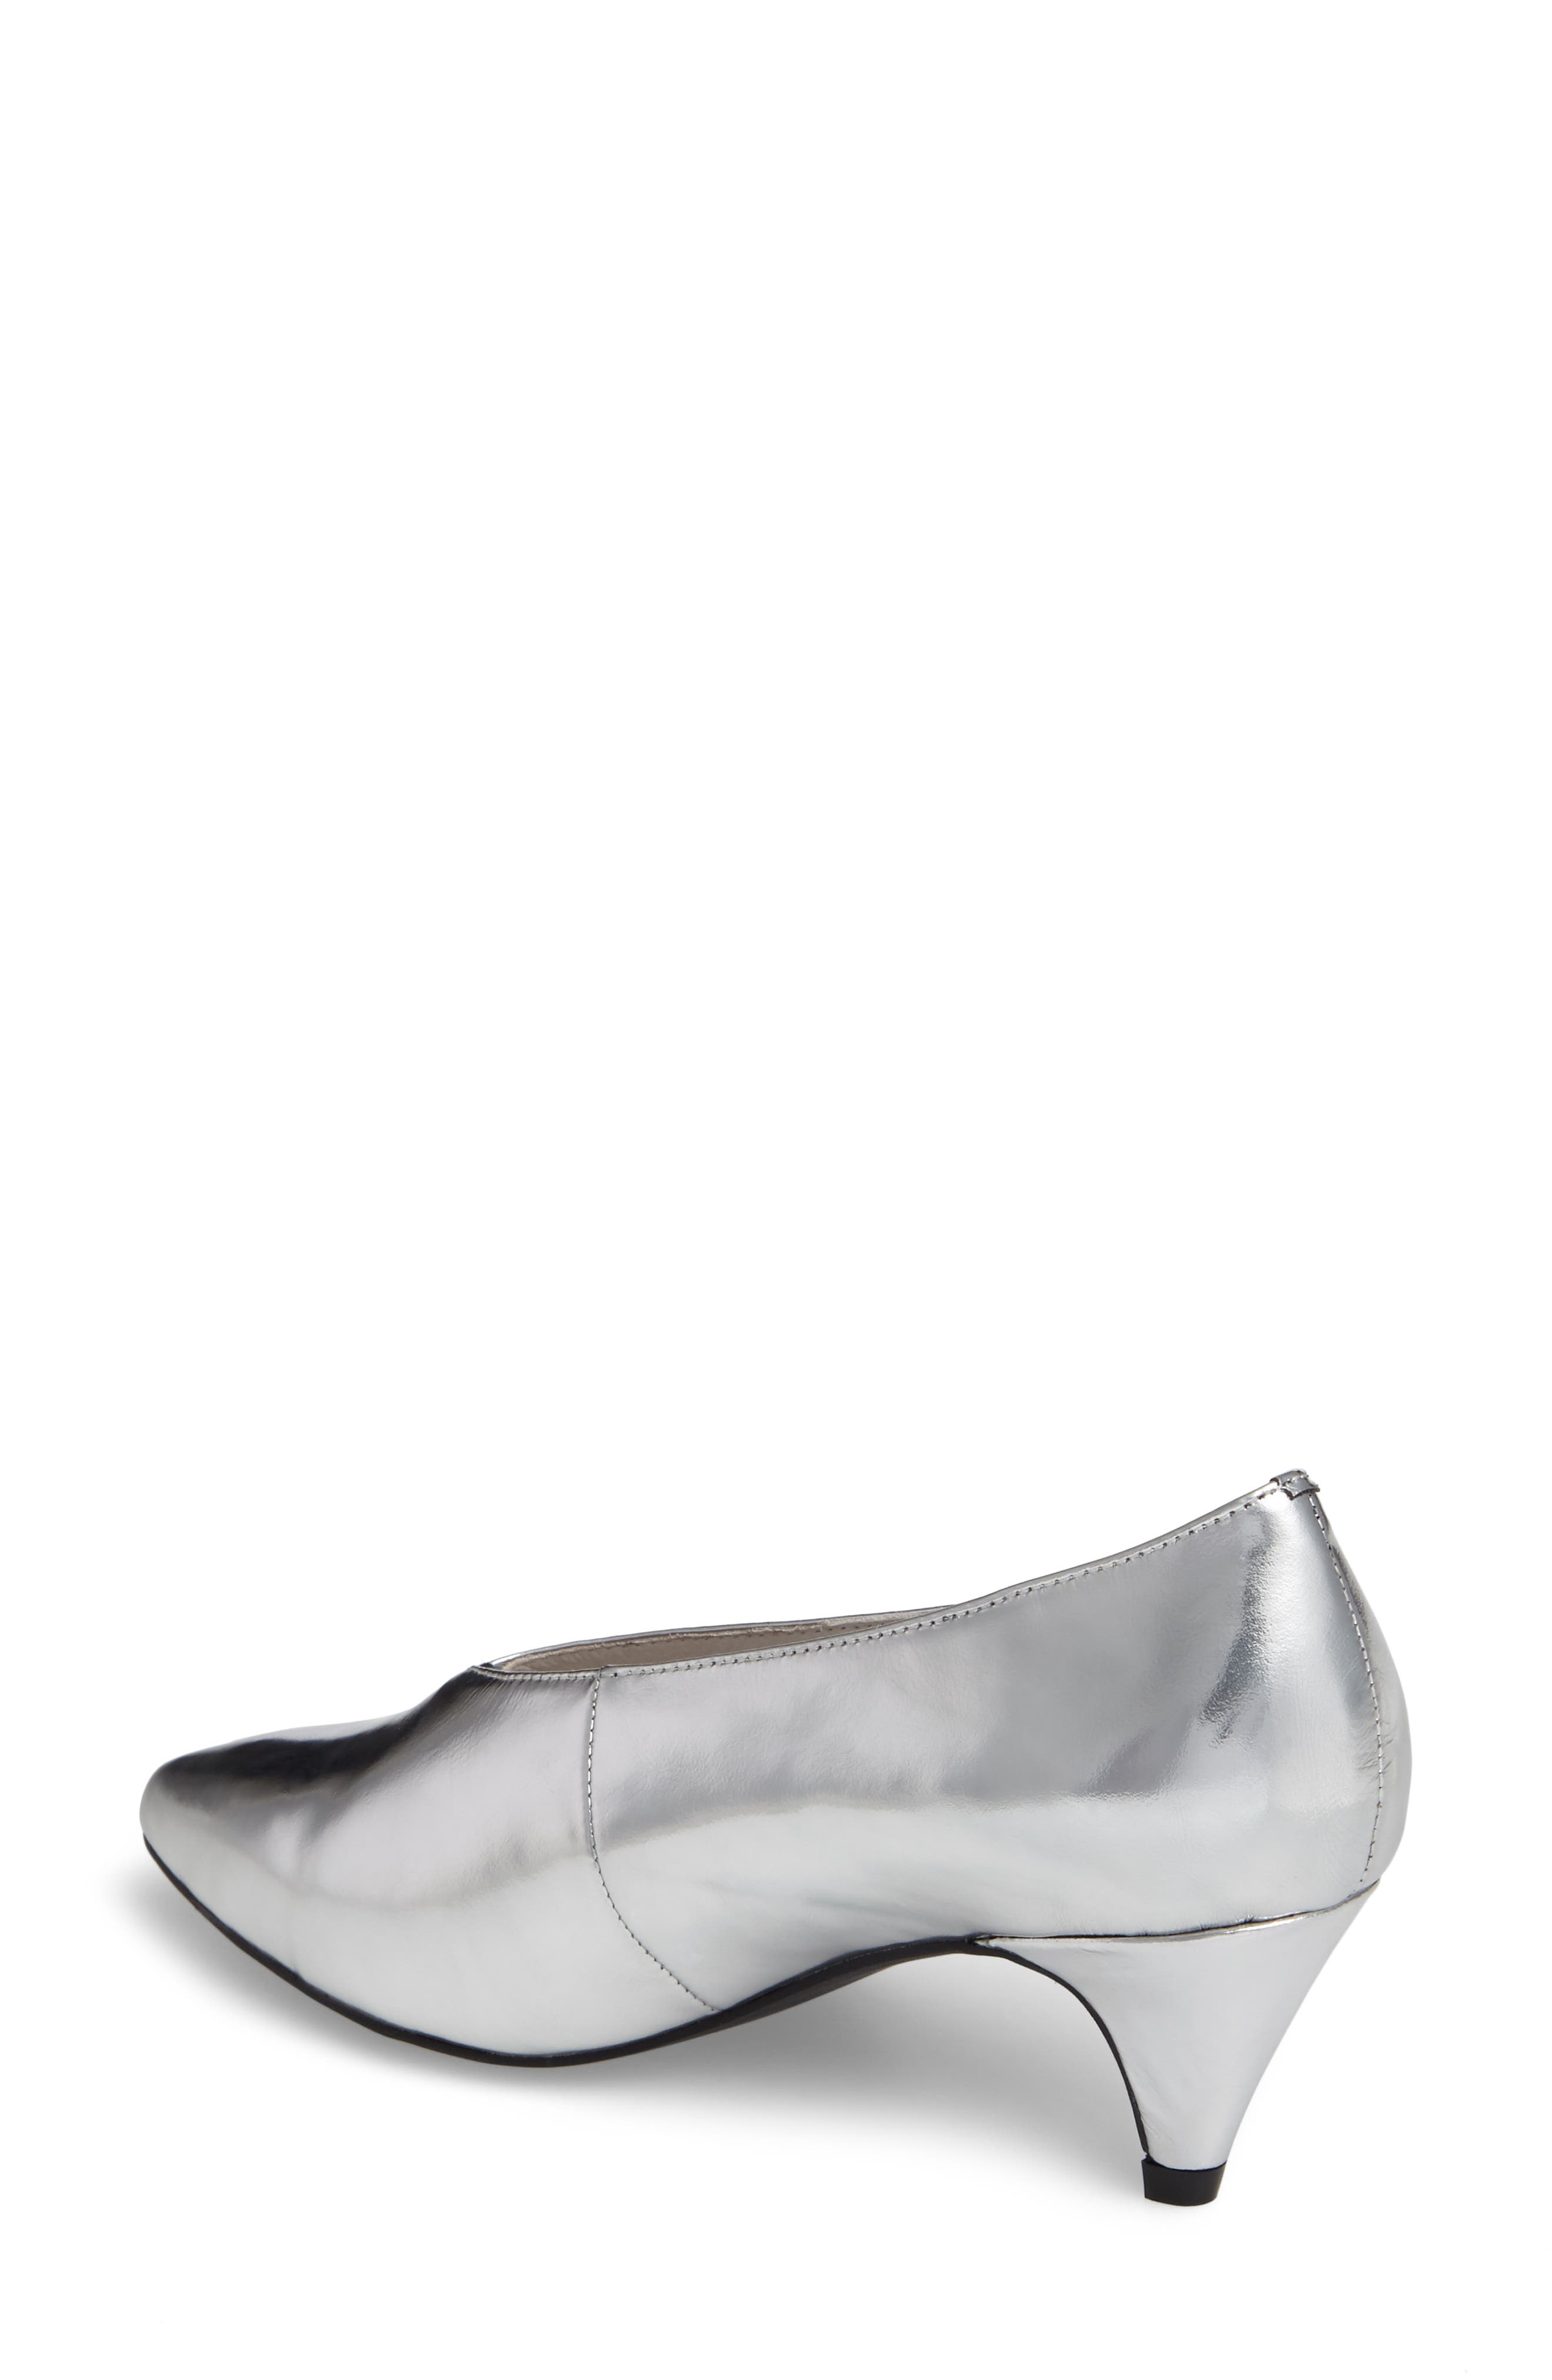 'Carla' Pointy Toe Pump,                             Alternate thumbnail 2, color,                             Silver Crinkle Metallic